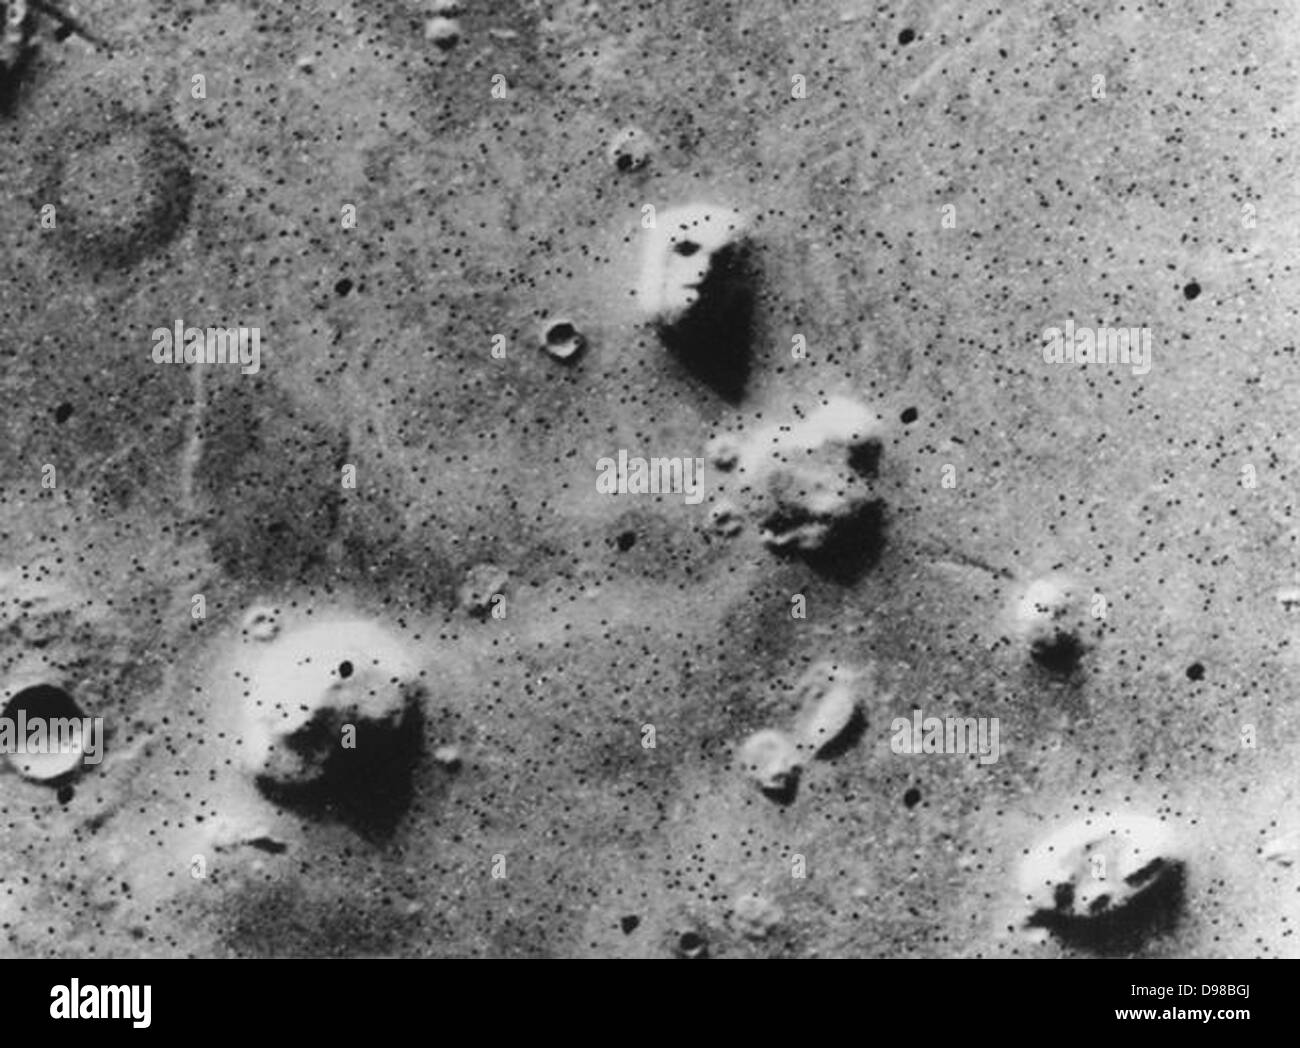 Viking orbiter image of the 'Face on Mars,' taken 25 July 1976 On 22 July 2006, the DLR-operated High Resolution Stock Photo